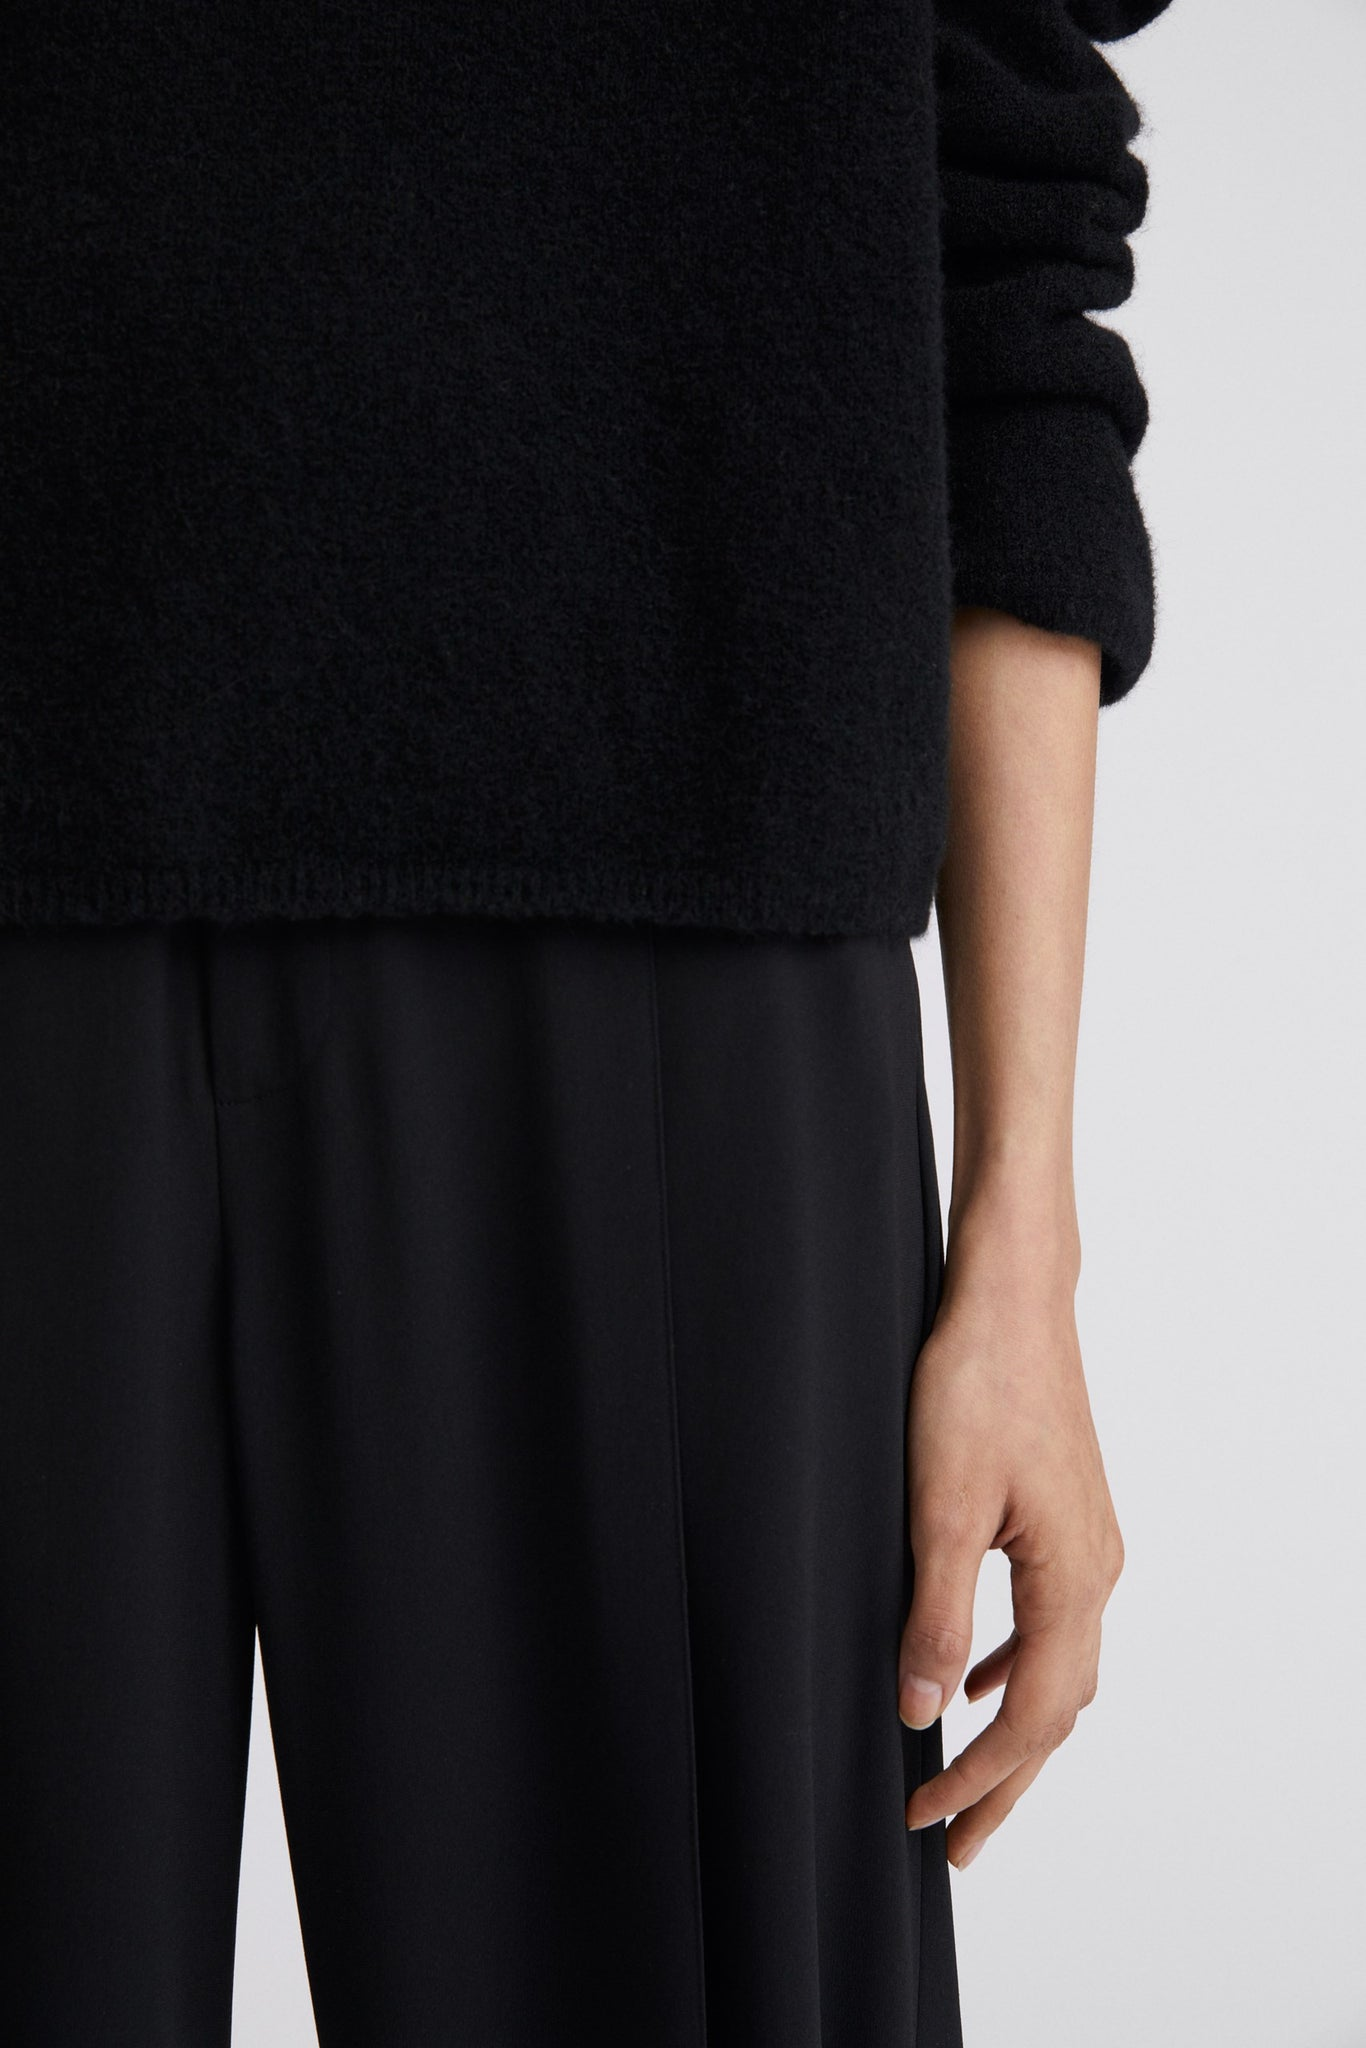 MIKA YAK FUNNELNECK SWEATER BY FILIPPA K